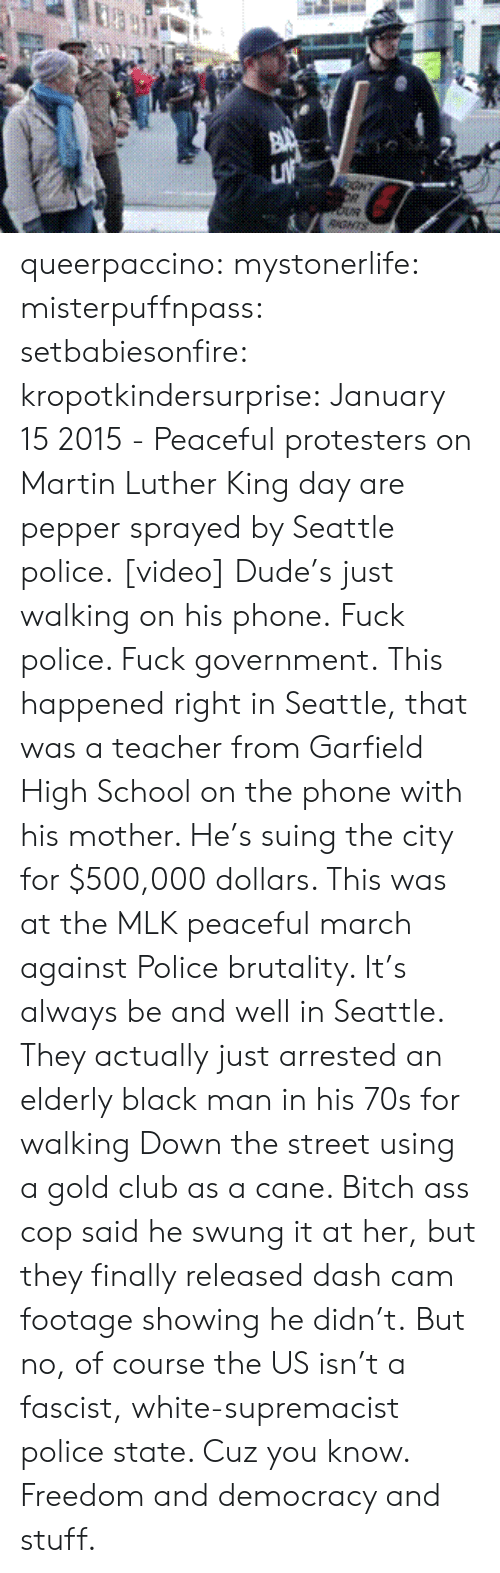 Black Man: GHT  RGNTS queerpaccino: mystonerlife:  misterpuffnpass:  setbabiesonfire:  kropotkindersurprise: January 15 2015 - Peaceful protesters on Martin Luther King day are pepper sprayed by Seattle police. [video] Dude's just walking on his phone.  Fuck police. Fuck government.  This happened right in Seattle, that was a teacher from Garfield High School on the phone with his mother. He's suing the city for $500,000 dollars. This was at the MLK peaceful march against Police brutality. It's always be and well in Seattle. They actually just arrested an elderly black man in his 70s for walking Down the street using a gold club as a cane. Bitch ass cop said he swung it at her, but they finally released dash cam footage showing he didn't.  But no, of course the US isn't a fascist, white-supremacist police state. Cuz you know. Freedom and democracy and stuff.